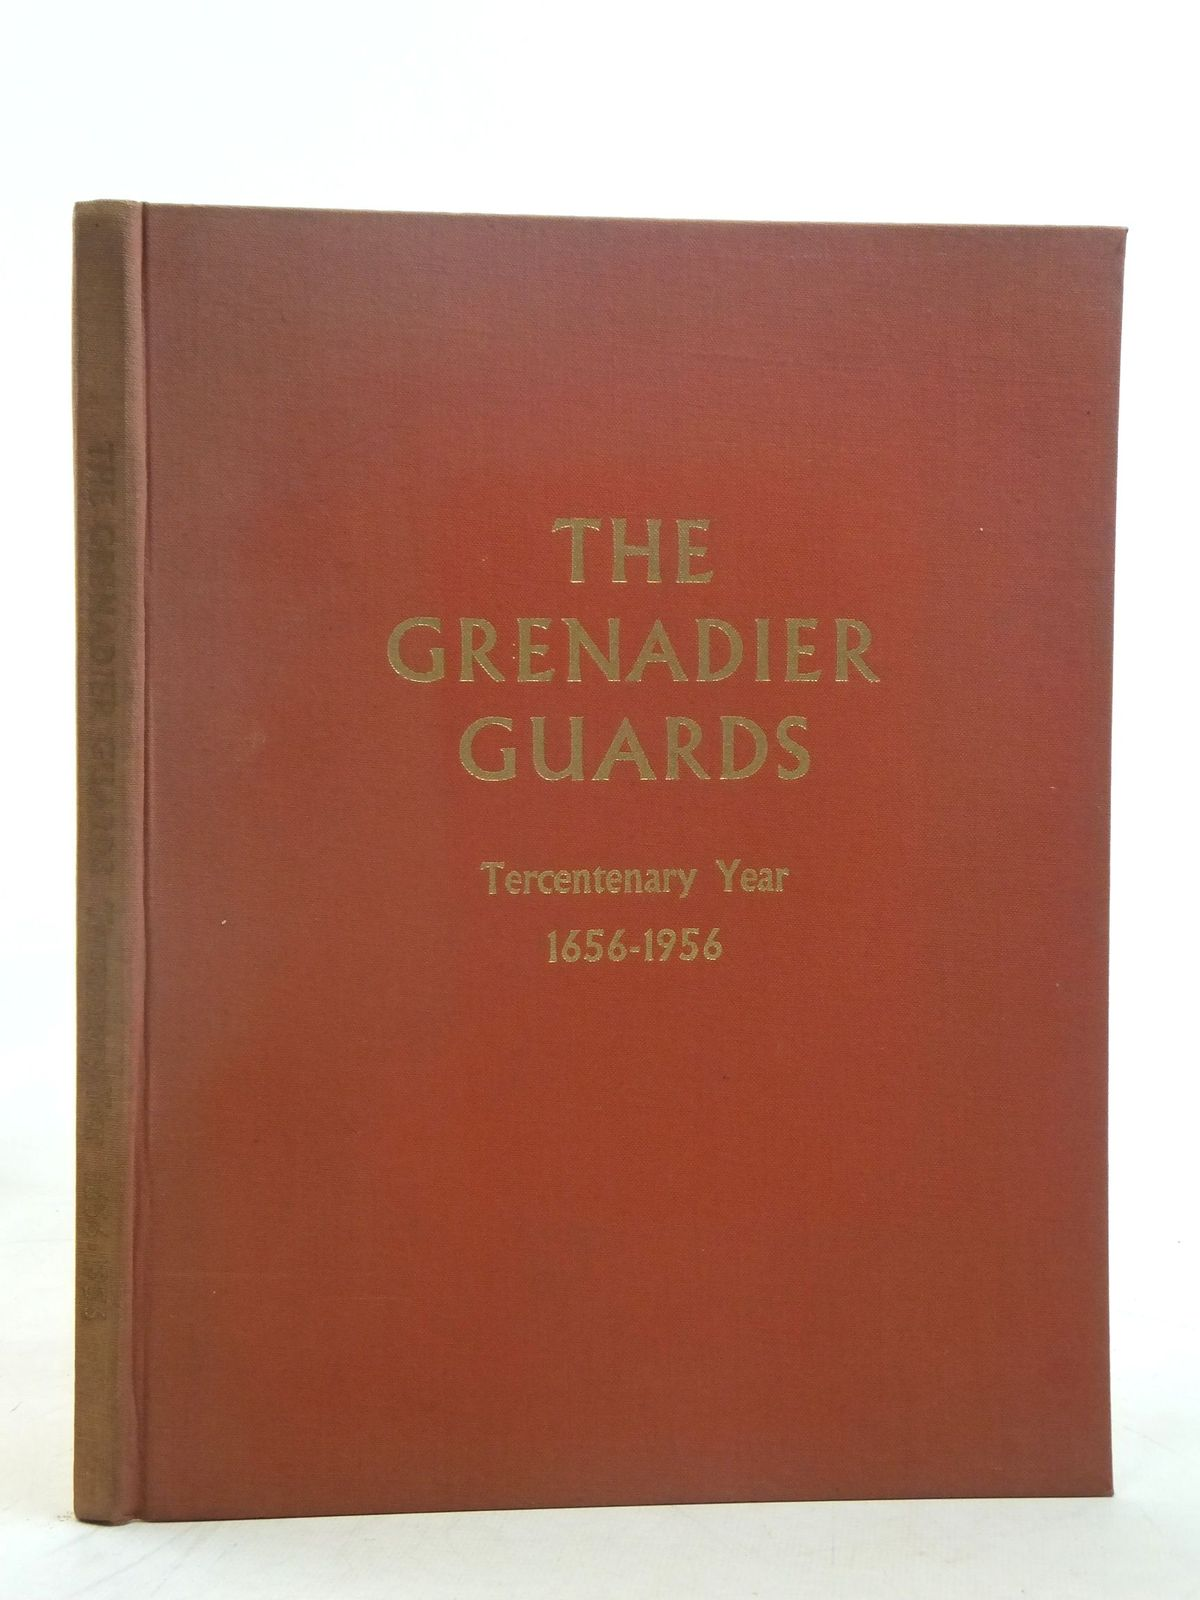 Photo of THE GRENADIER GUARDS TERCENTENARY YEAR 1656-1956 published by W.S. Cowell Ltd. (STOCK CODE: 2116604)  for sale by Stella & Rose's Books